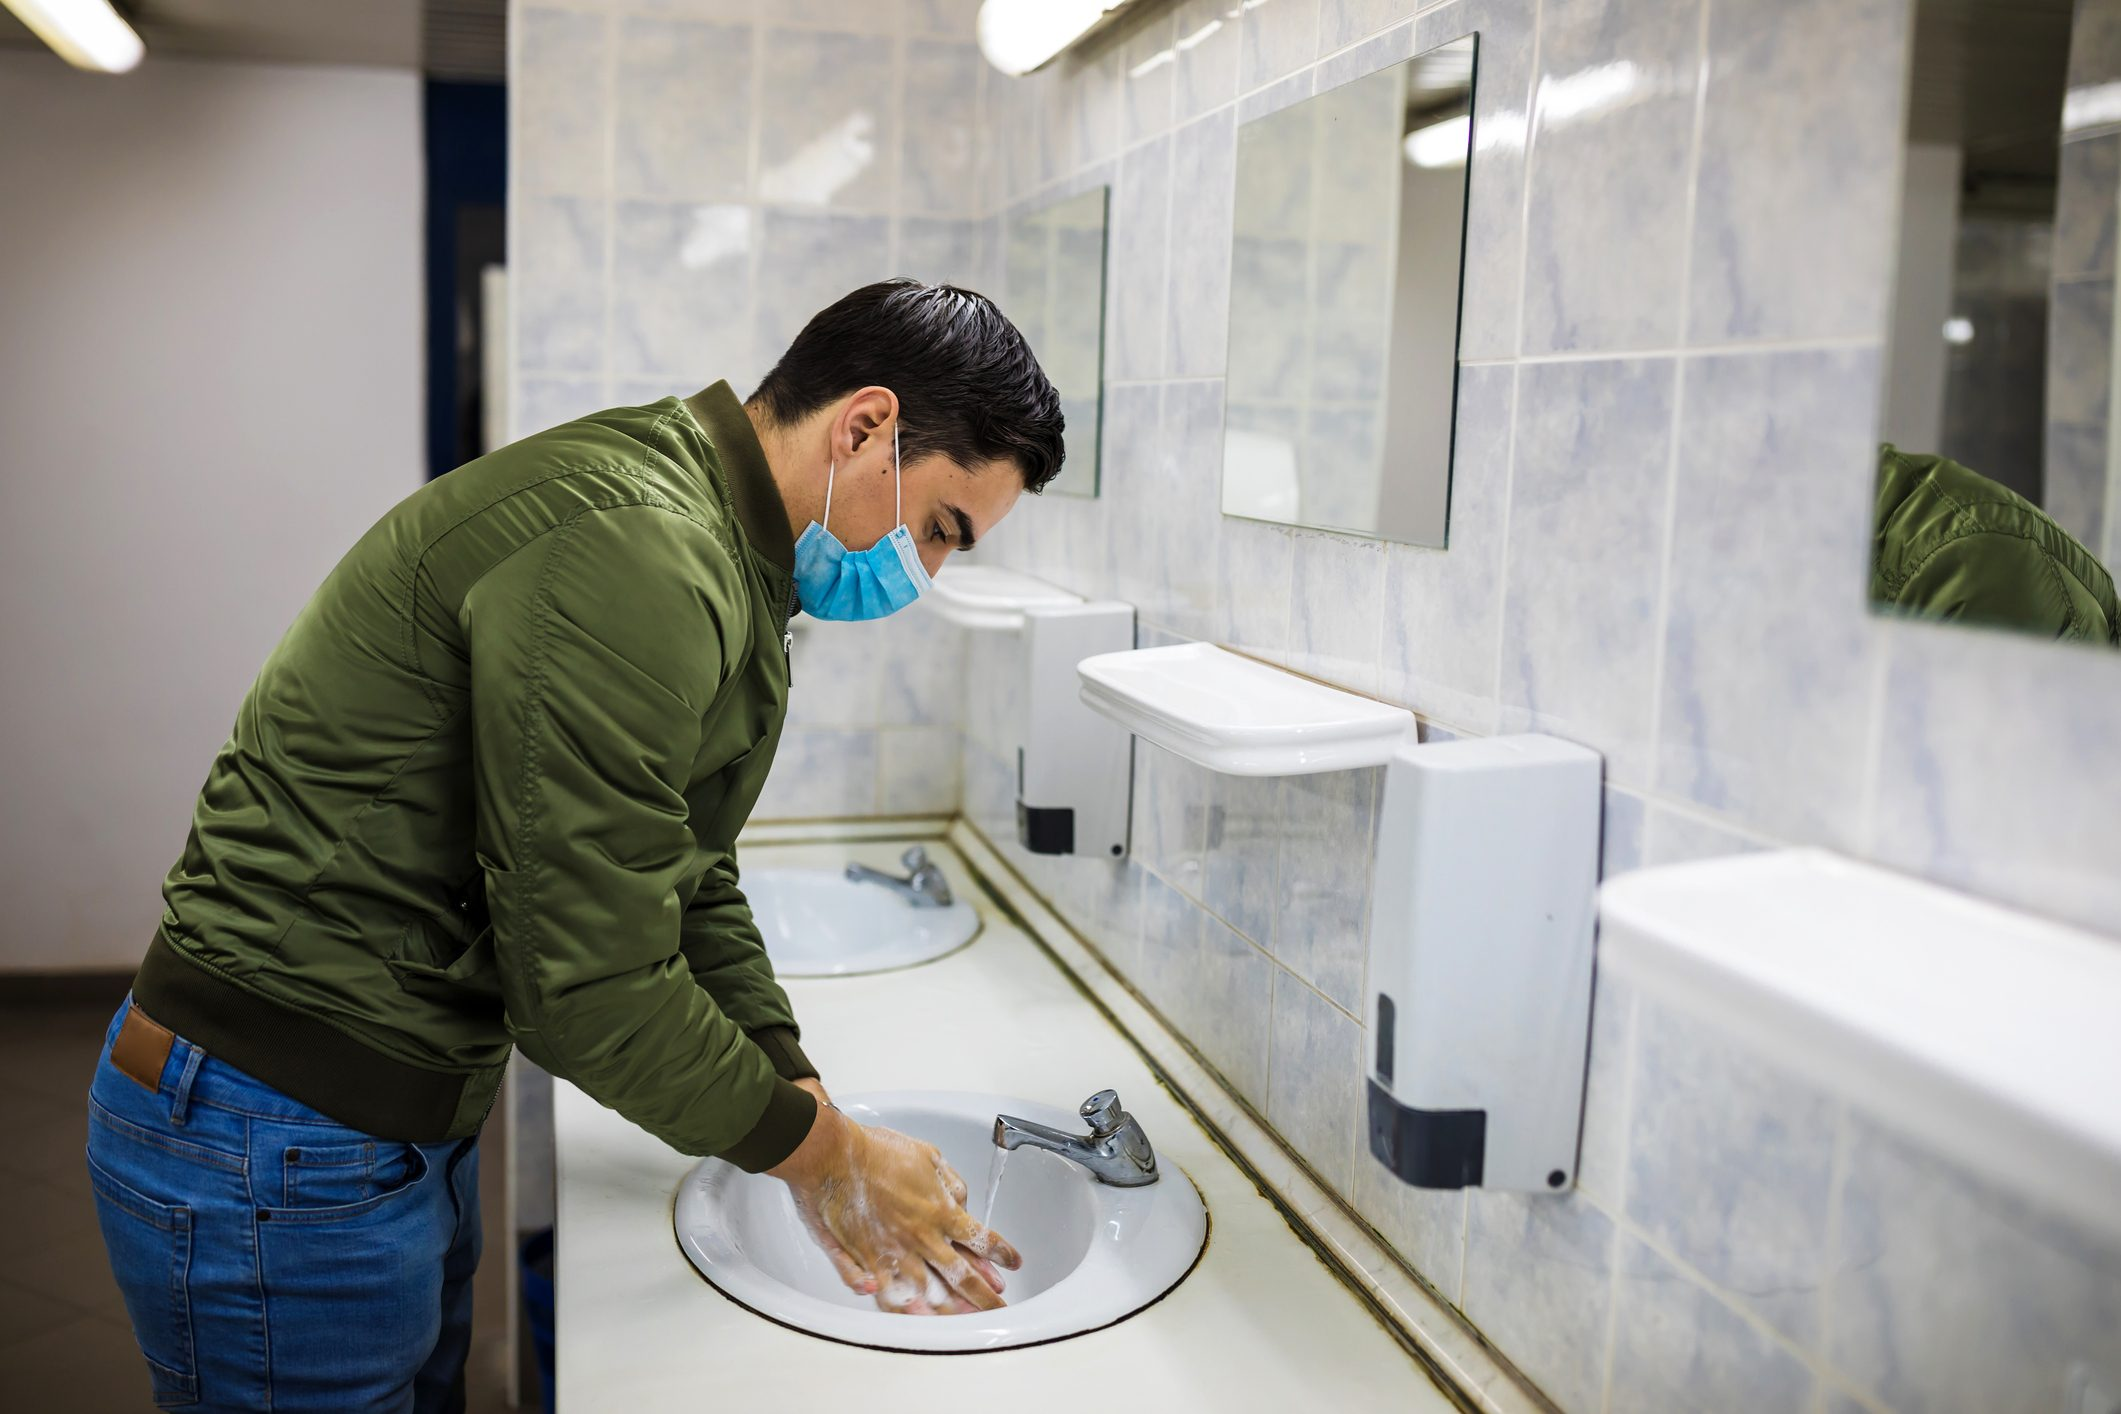 Man washing his hands to avoid diseases like coronavirus Man with a face mask washes his hands in a public bathroom